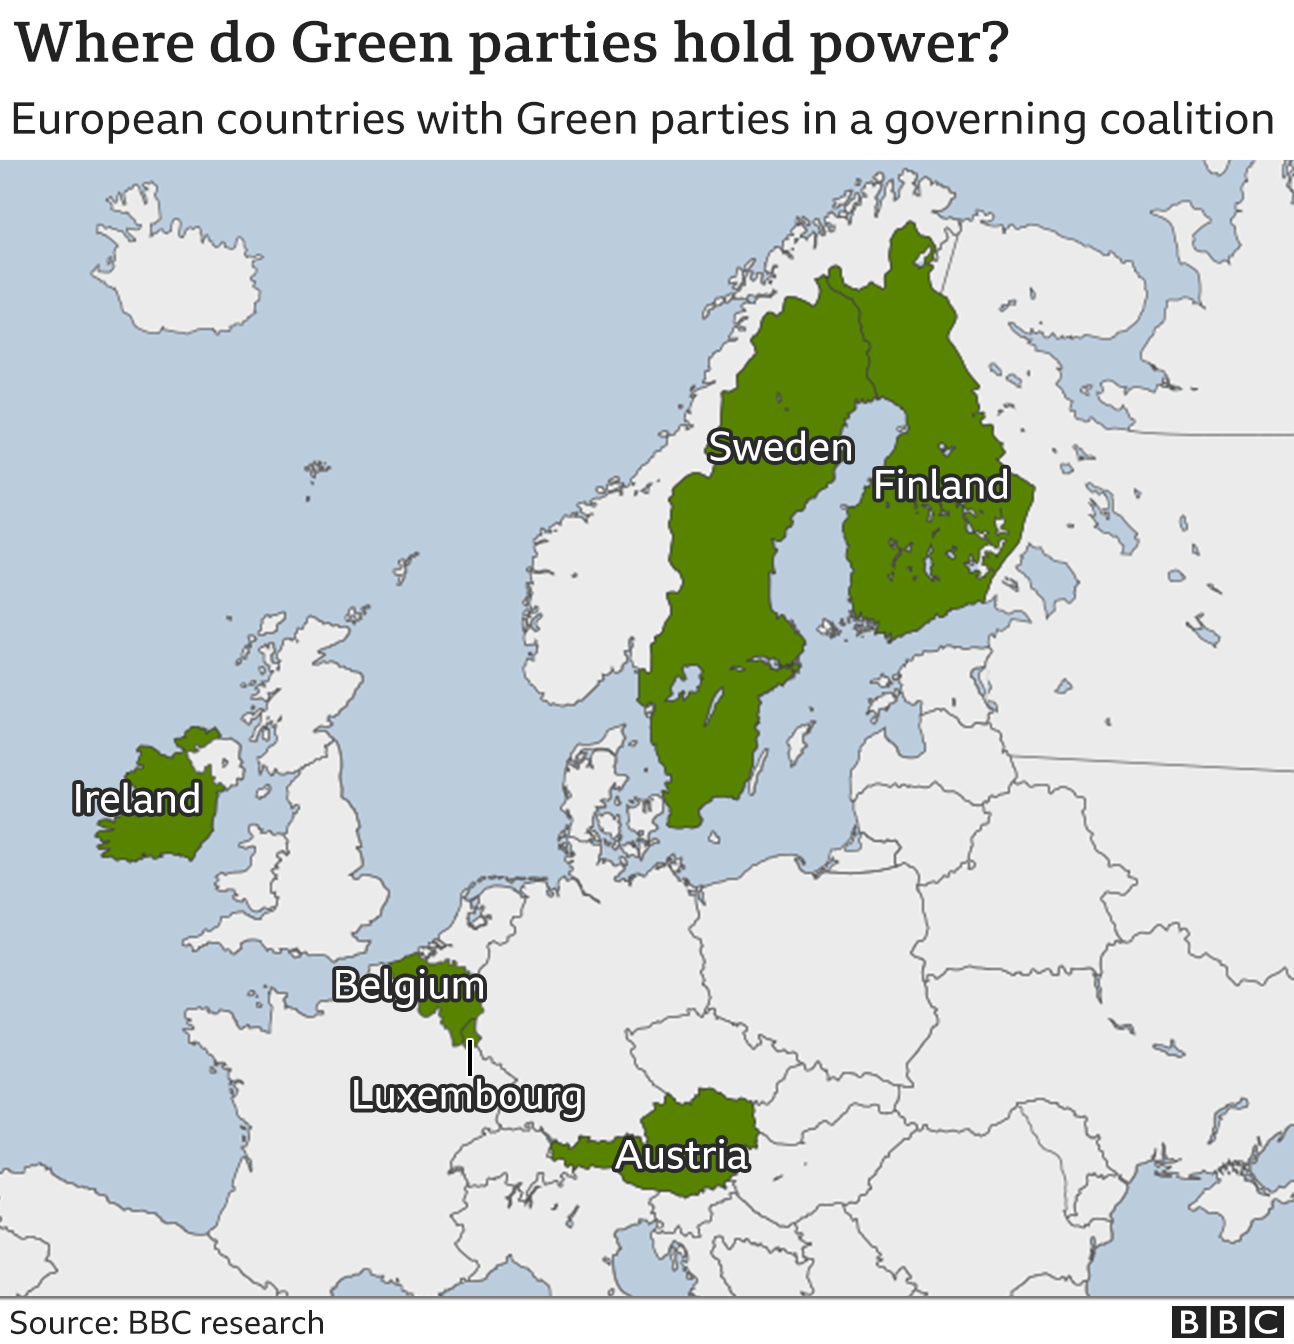 A map showing the countries where green parties hold power